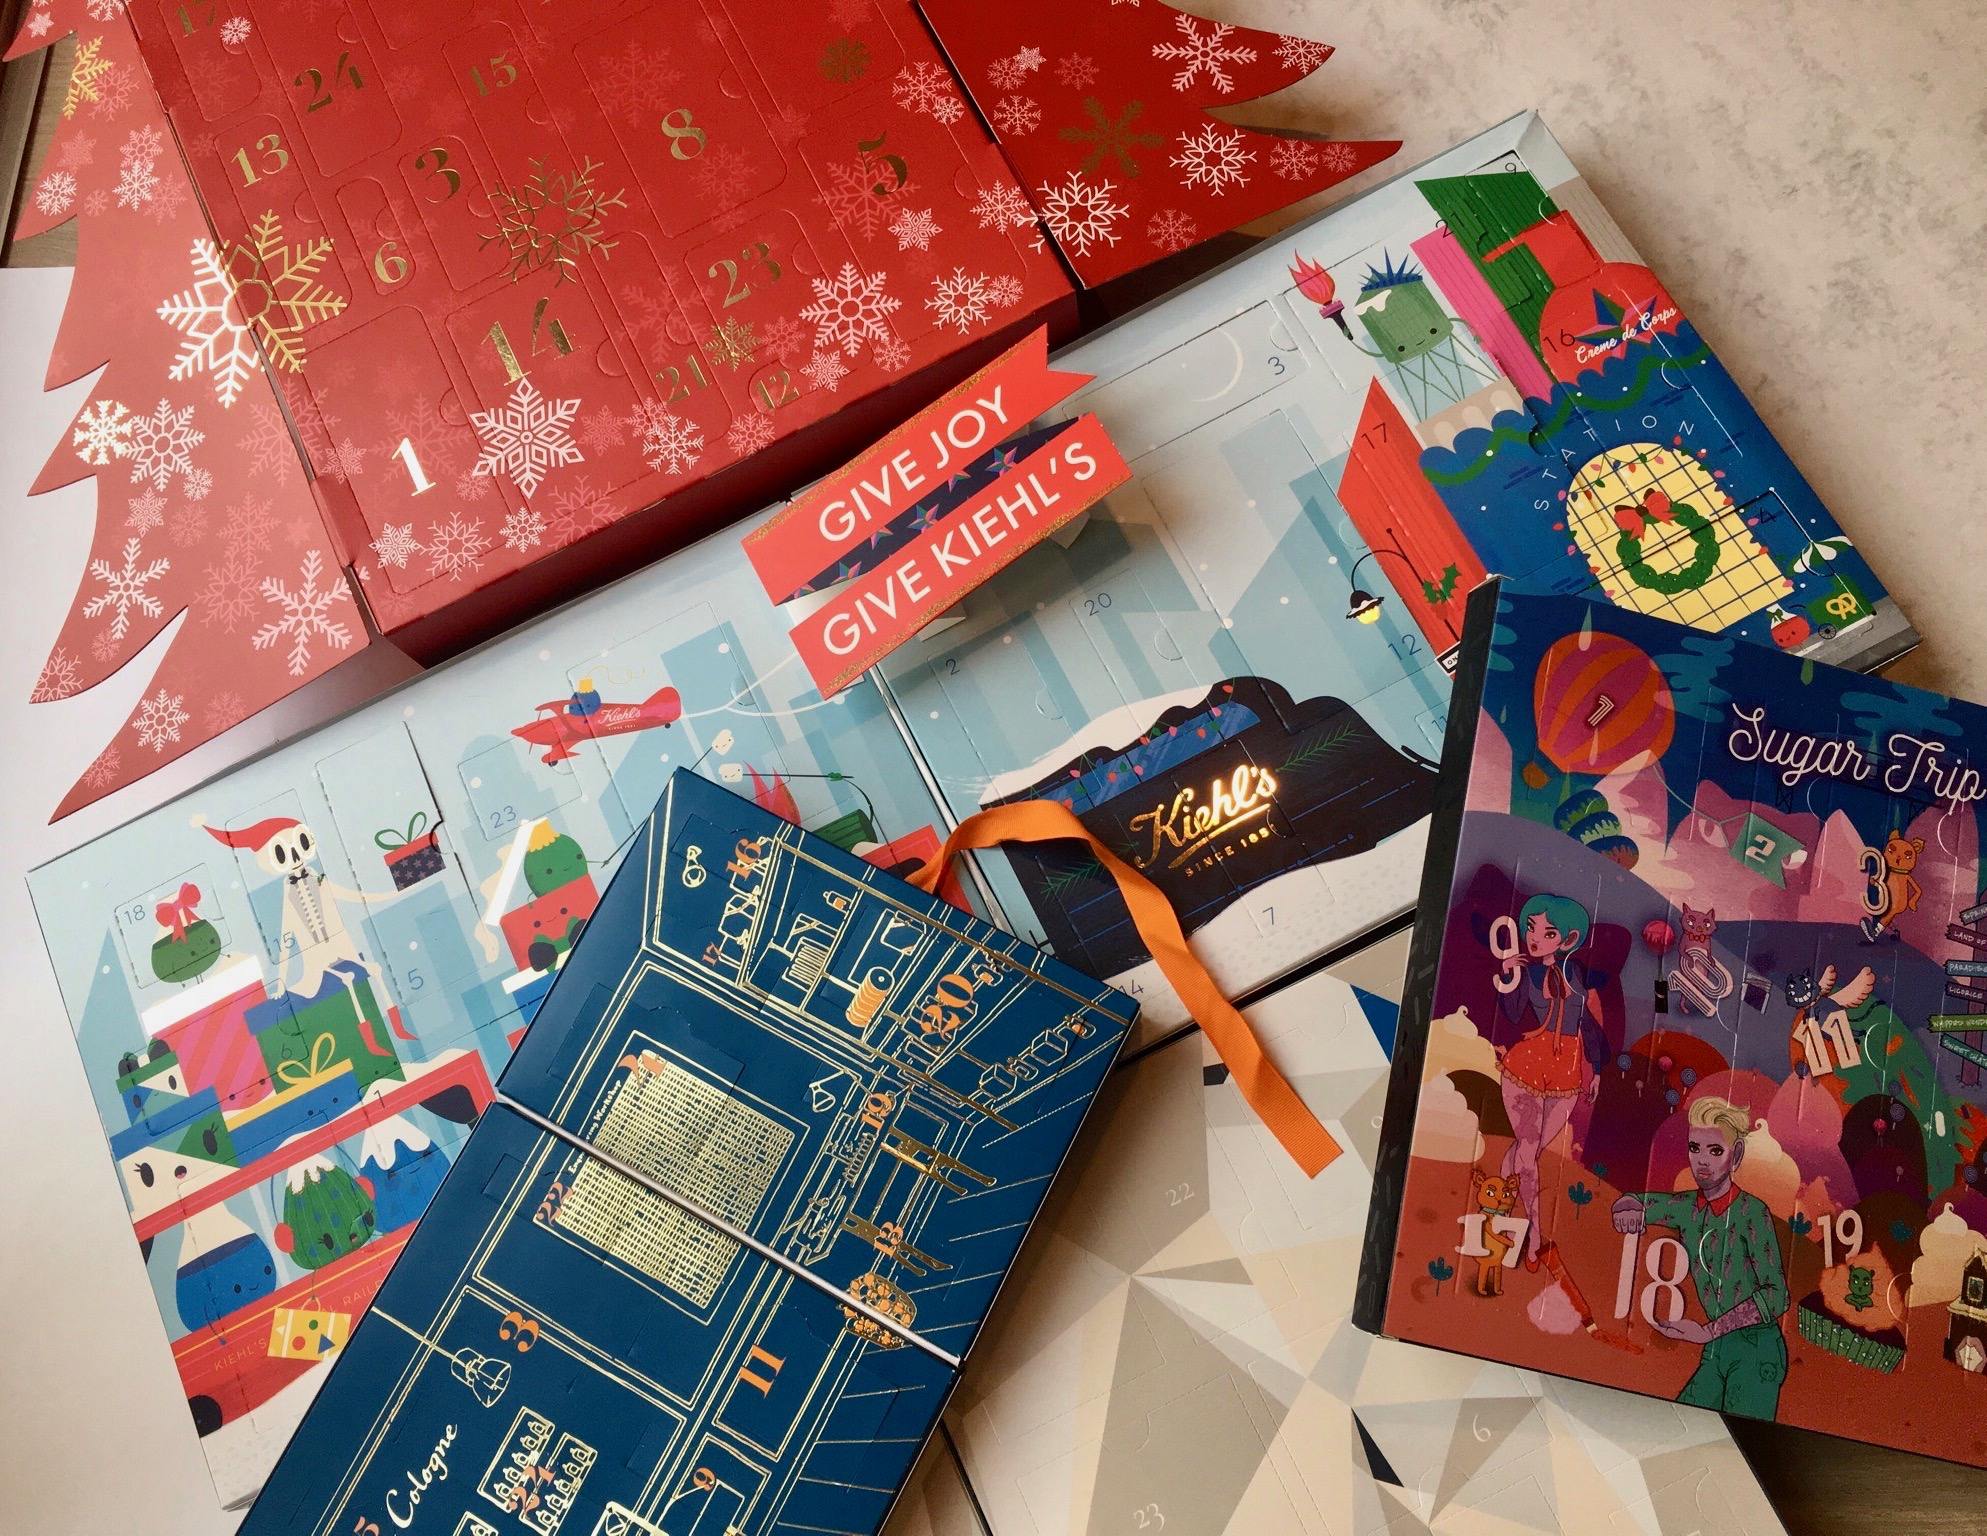 Adventskalender Rituals 2018 Beauty Advent Calendars Worth The Investment Or Not Franciska